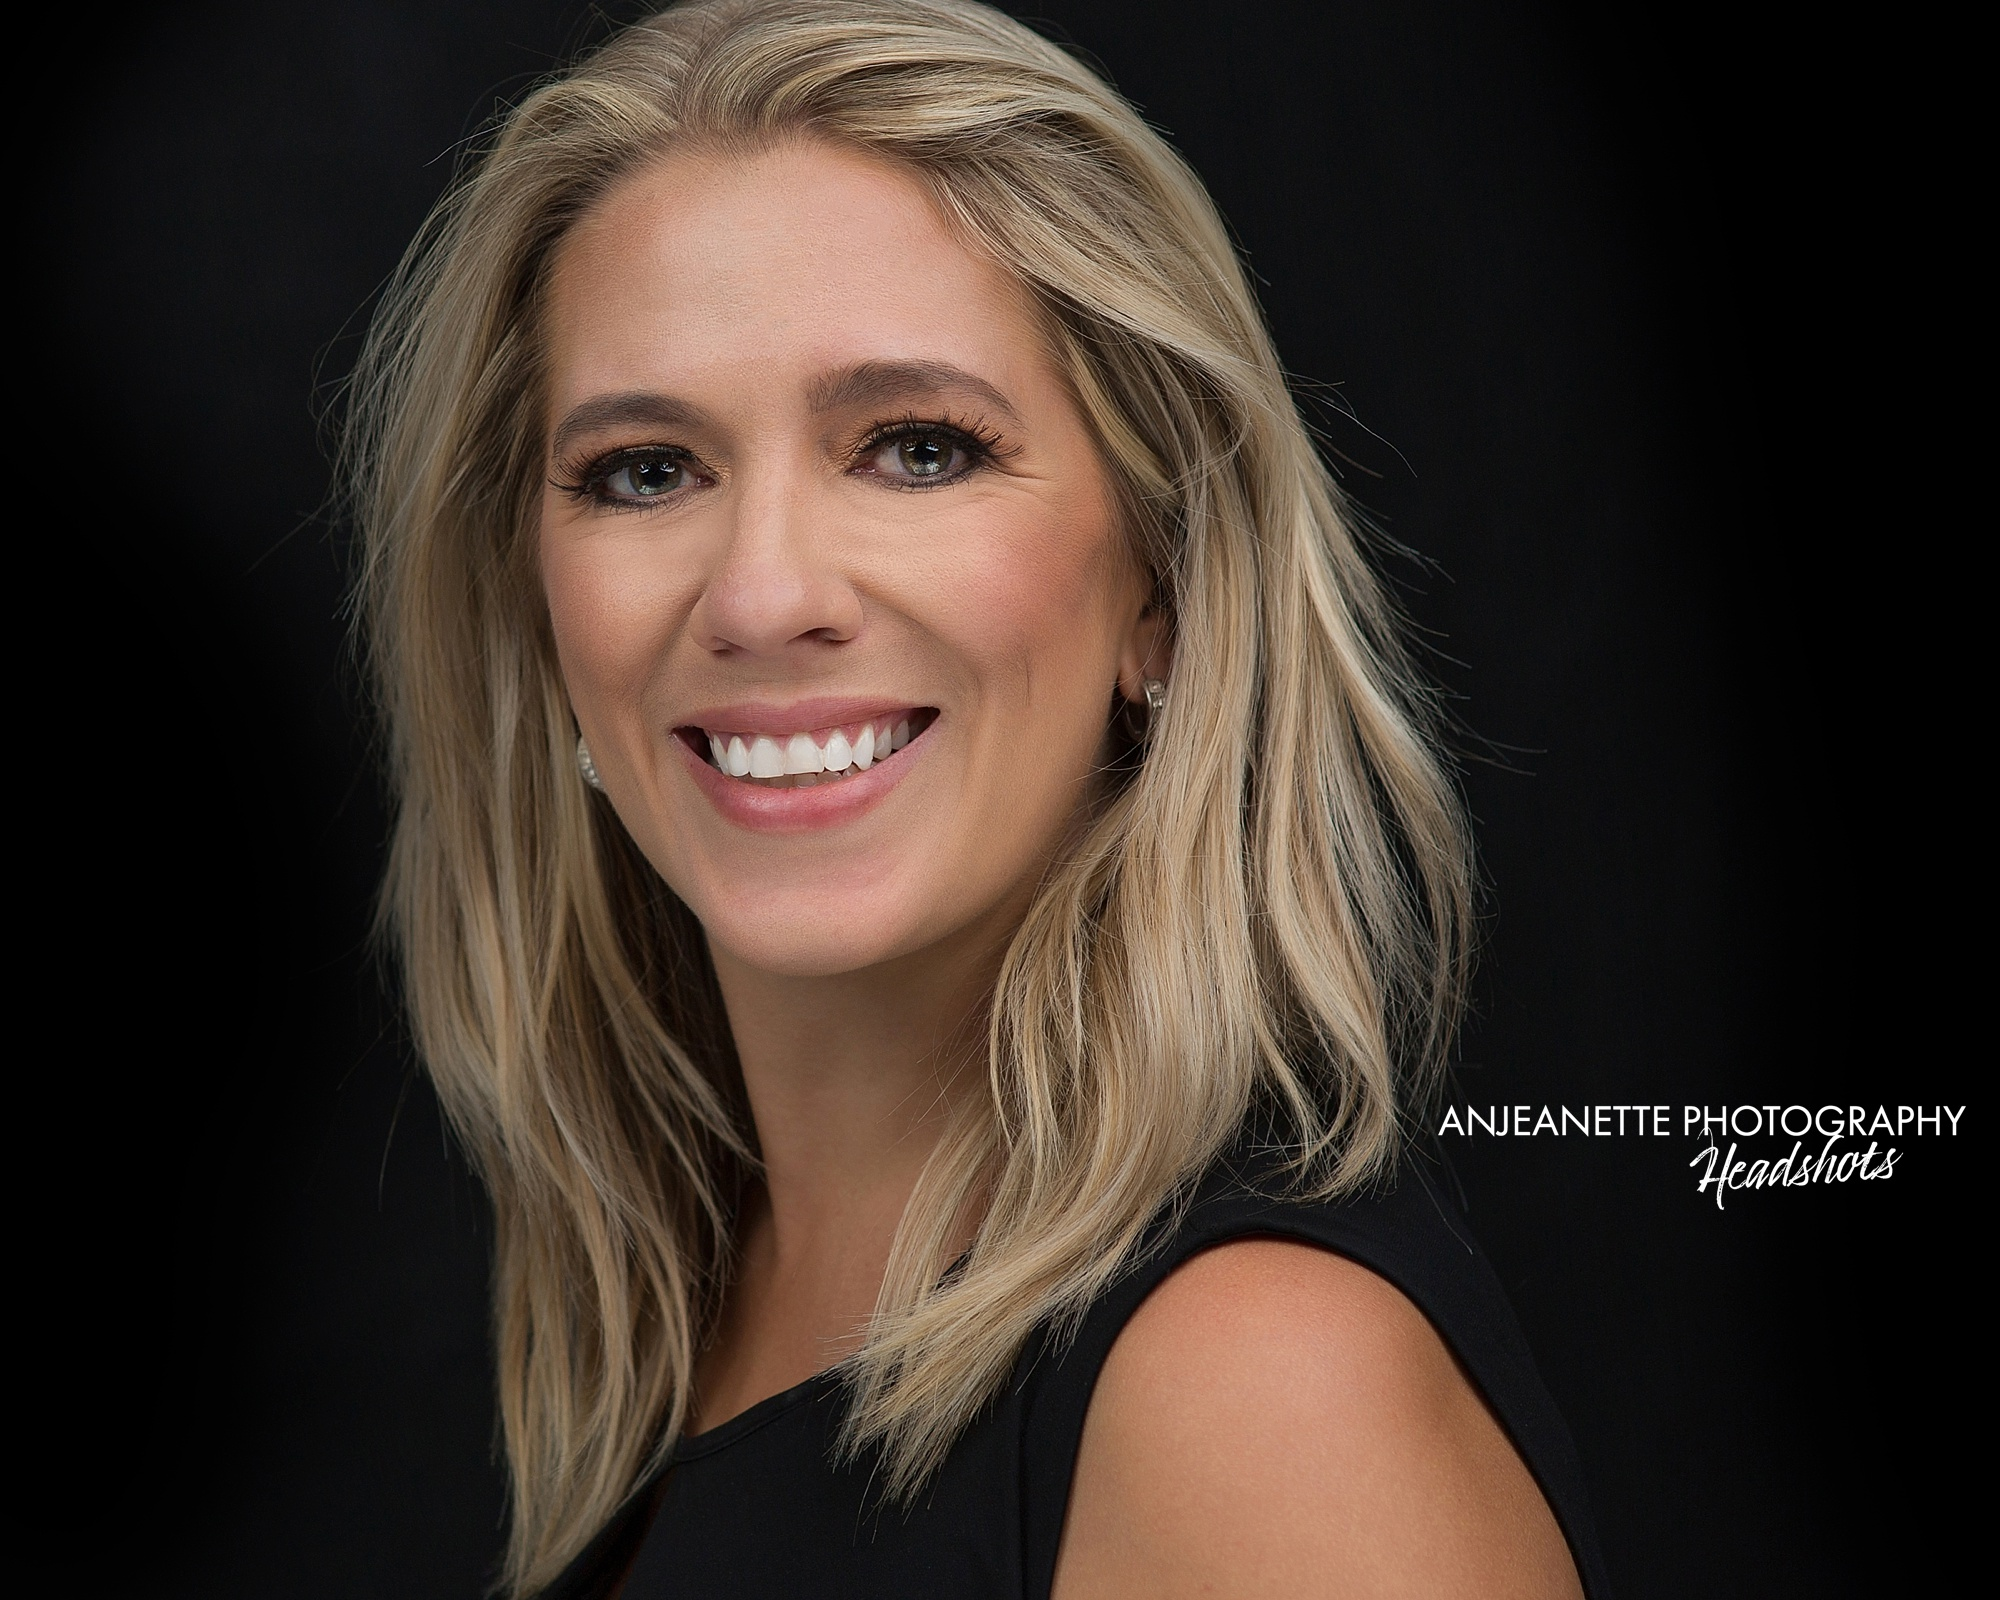 Headshot Arizona real estate professional business Peoria Az Anthem Az portrait photographer Anjeanette Photography Phoenix real estate portrait